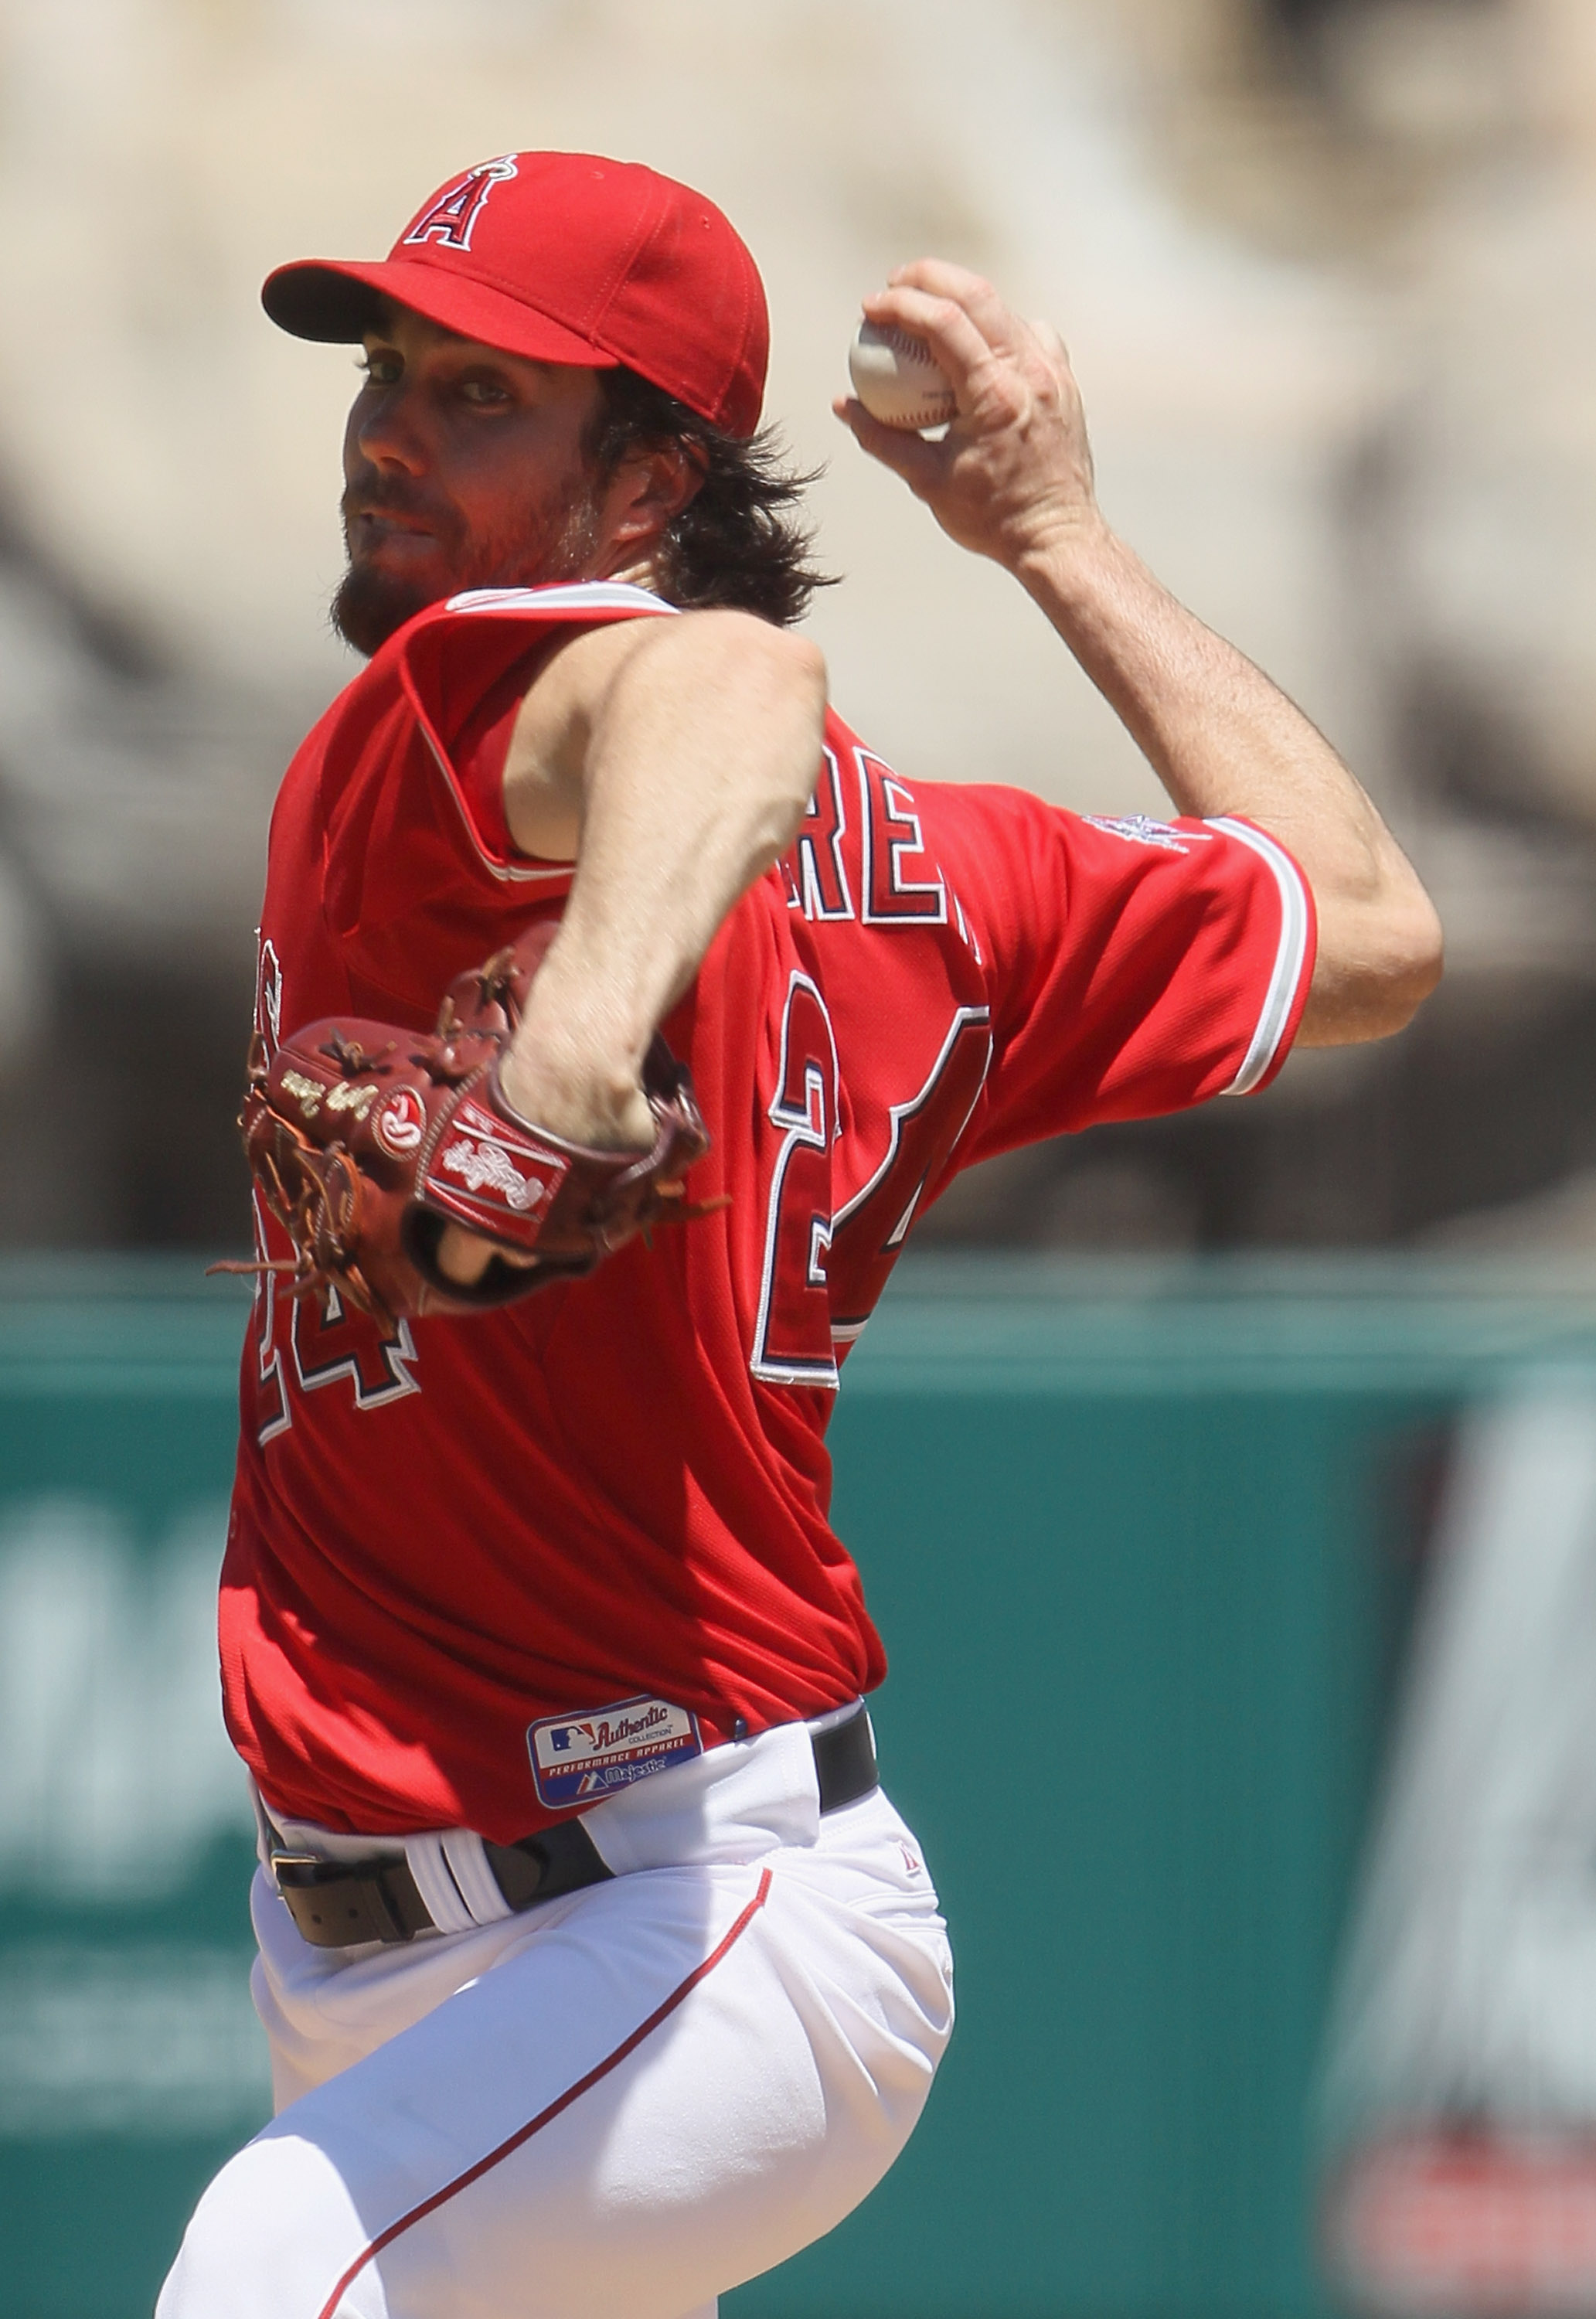 ANAHEIM, CA - AUGUST 15:  Dan Haren #24 of the Los Angeles Angels of Anaheim pitches against the Toronto Blue Jays at Angel Stadium on August 15, 2010 in Anaheim, California. The Blue Jays defeated the Angels 4-1.  (Photo by Jeff Gross/Getty Images)